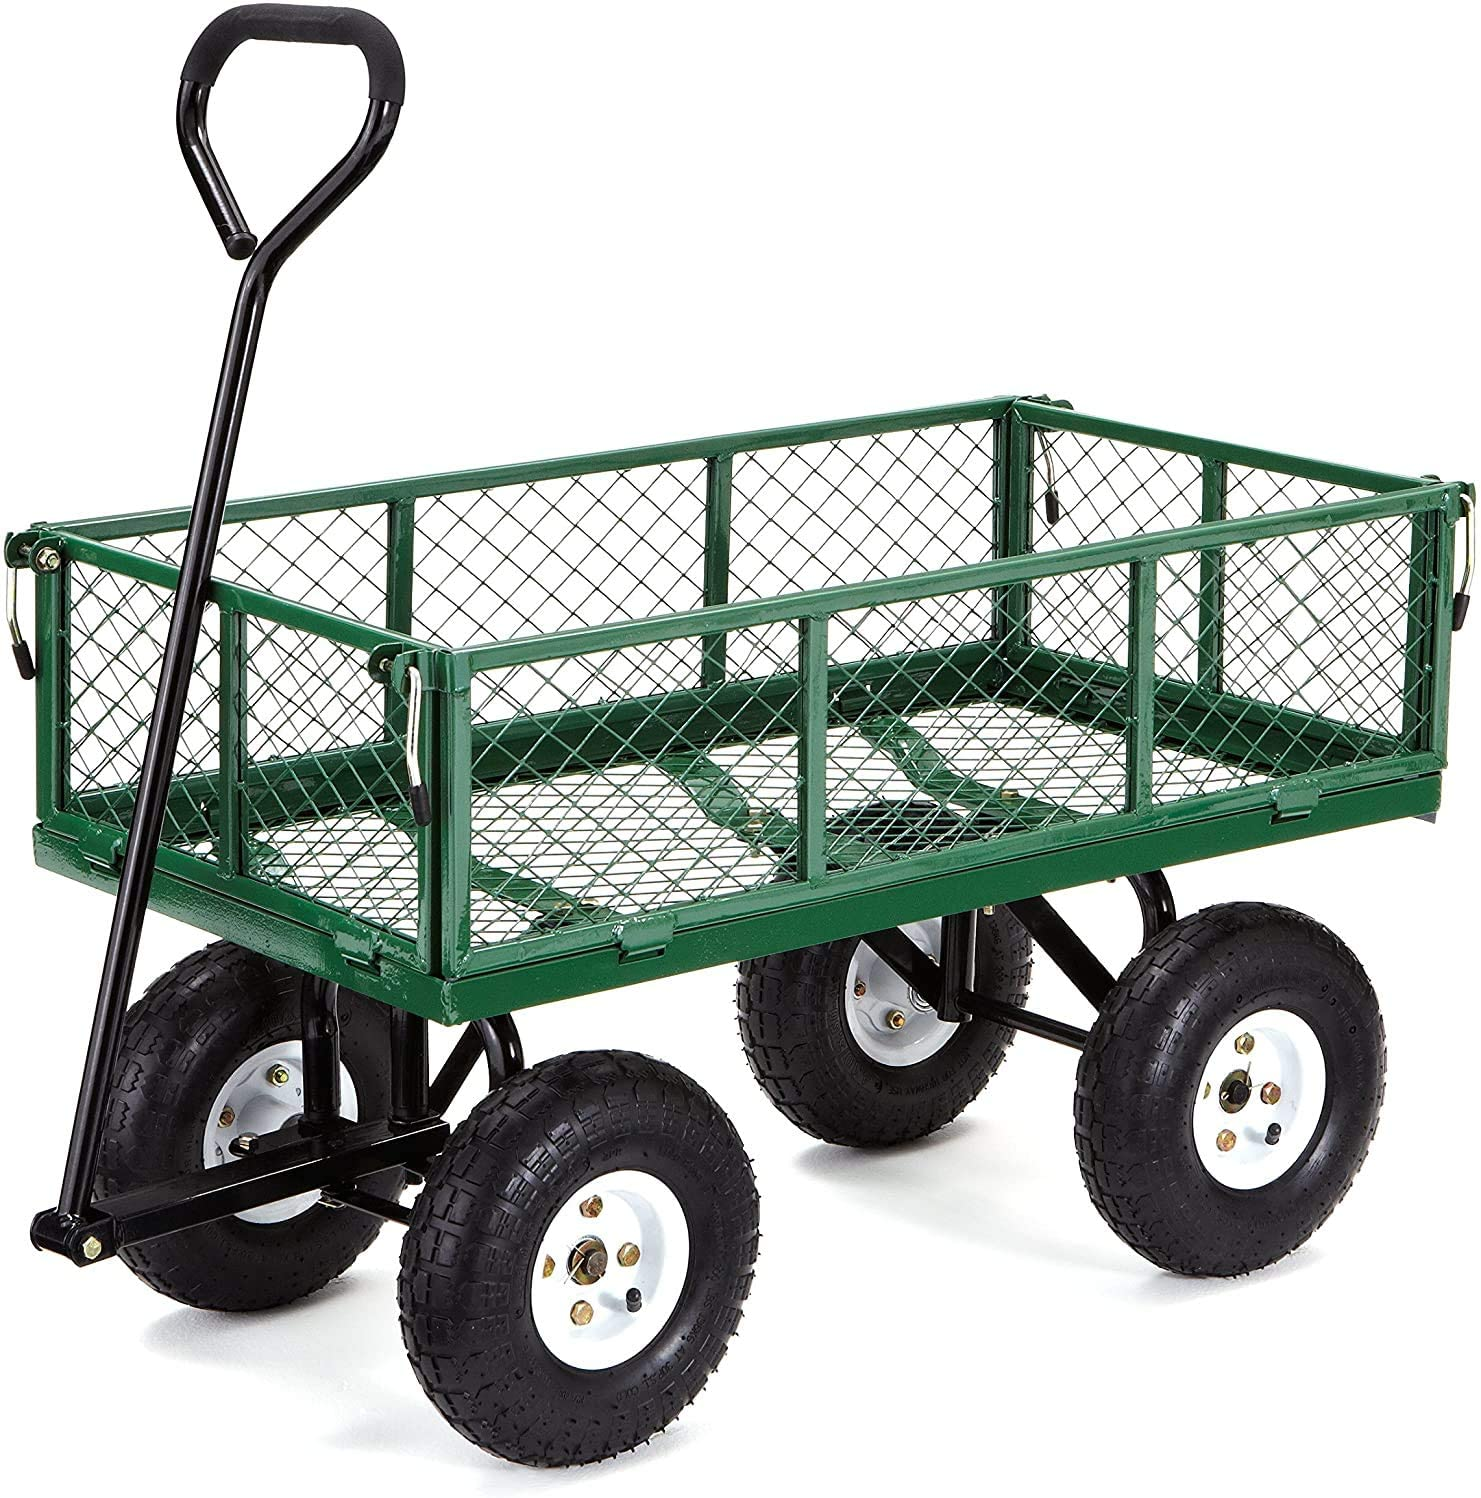 Gorilla Carts GOR400-COM Steel Garden Cart with Removable Sides, 400-lbs. Capacity